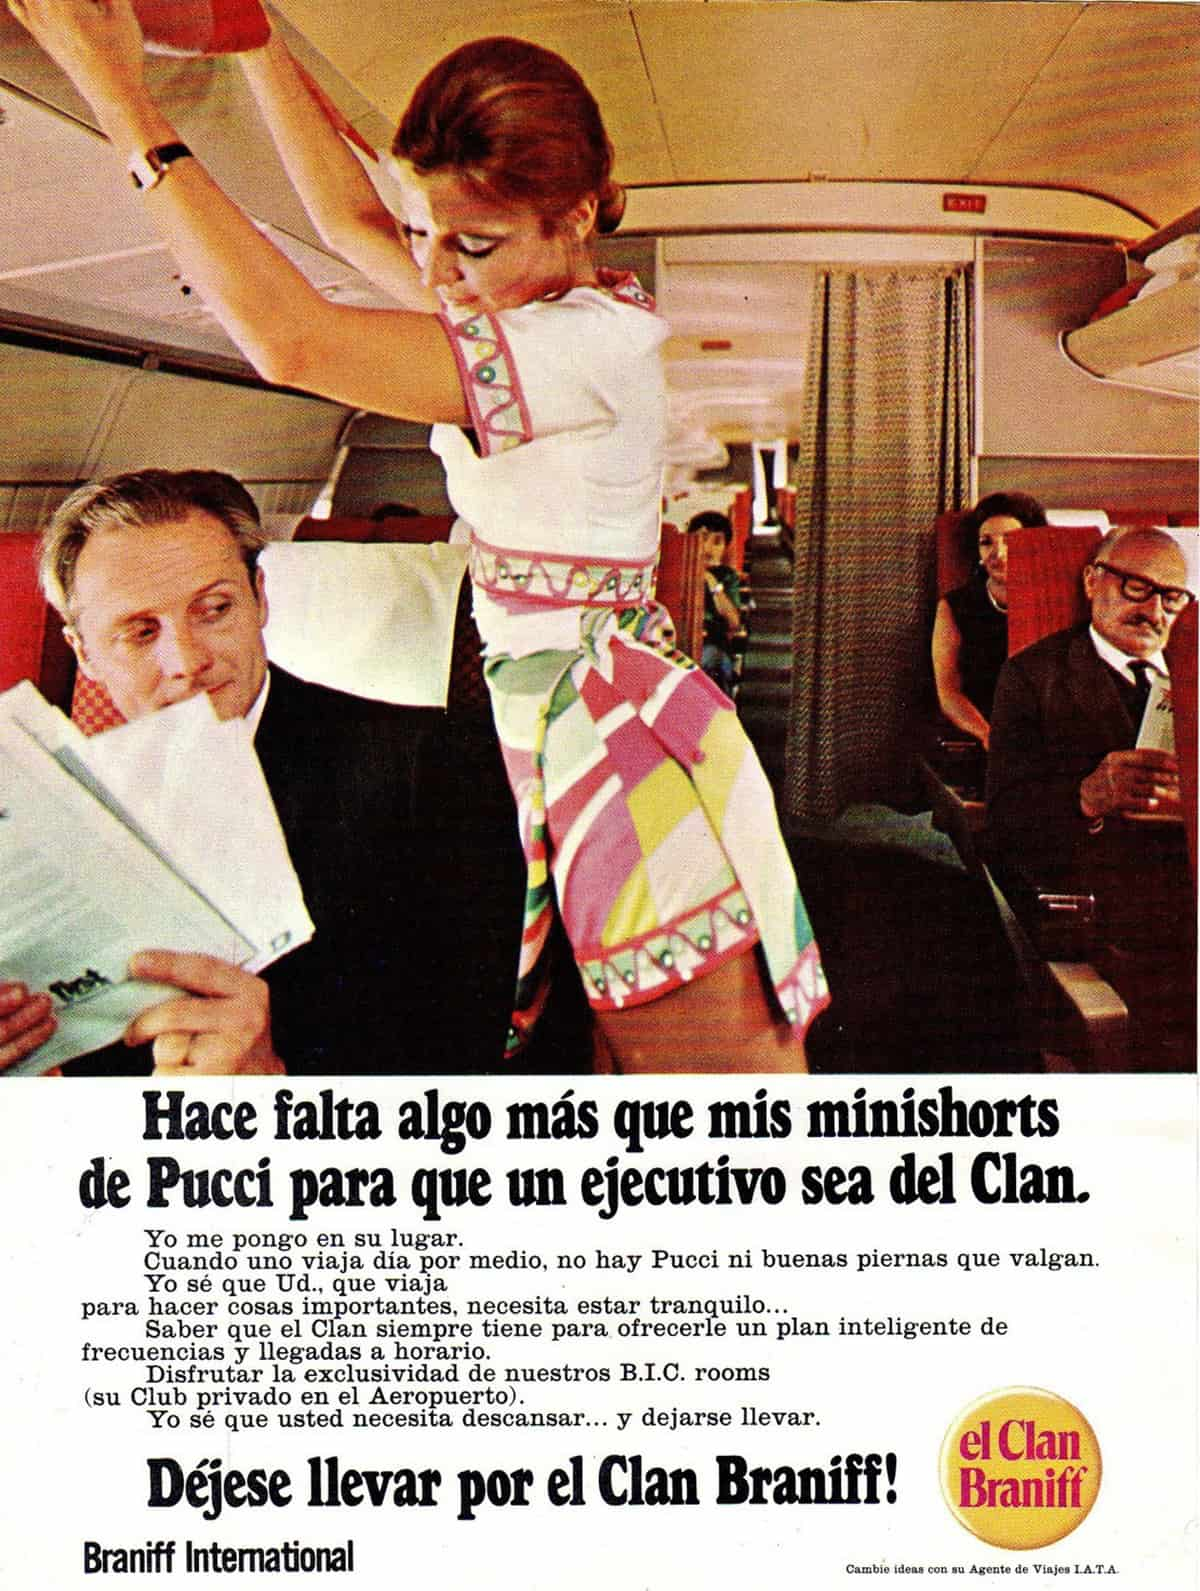 Braniff ad for Mexico, 1960s